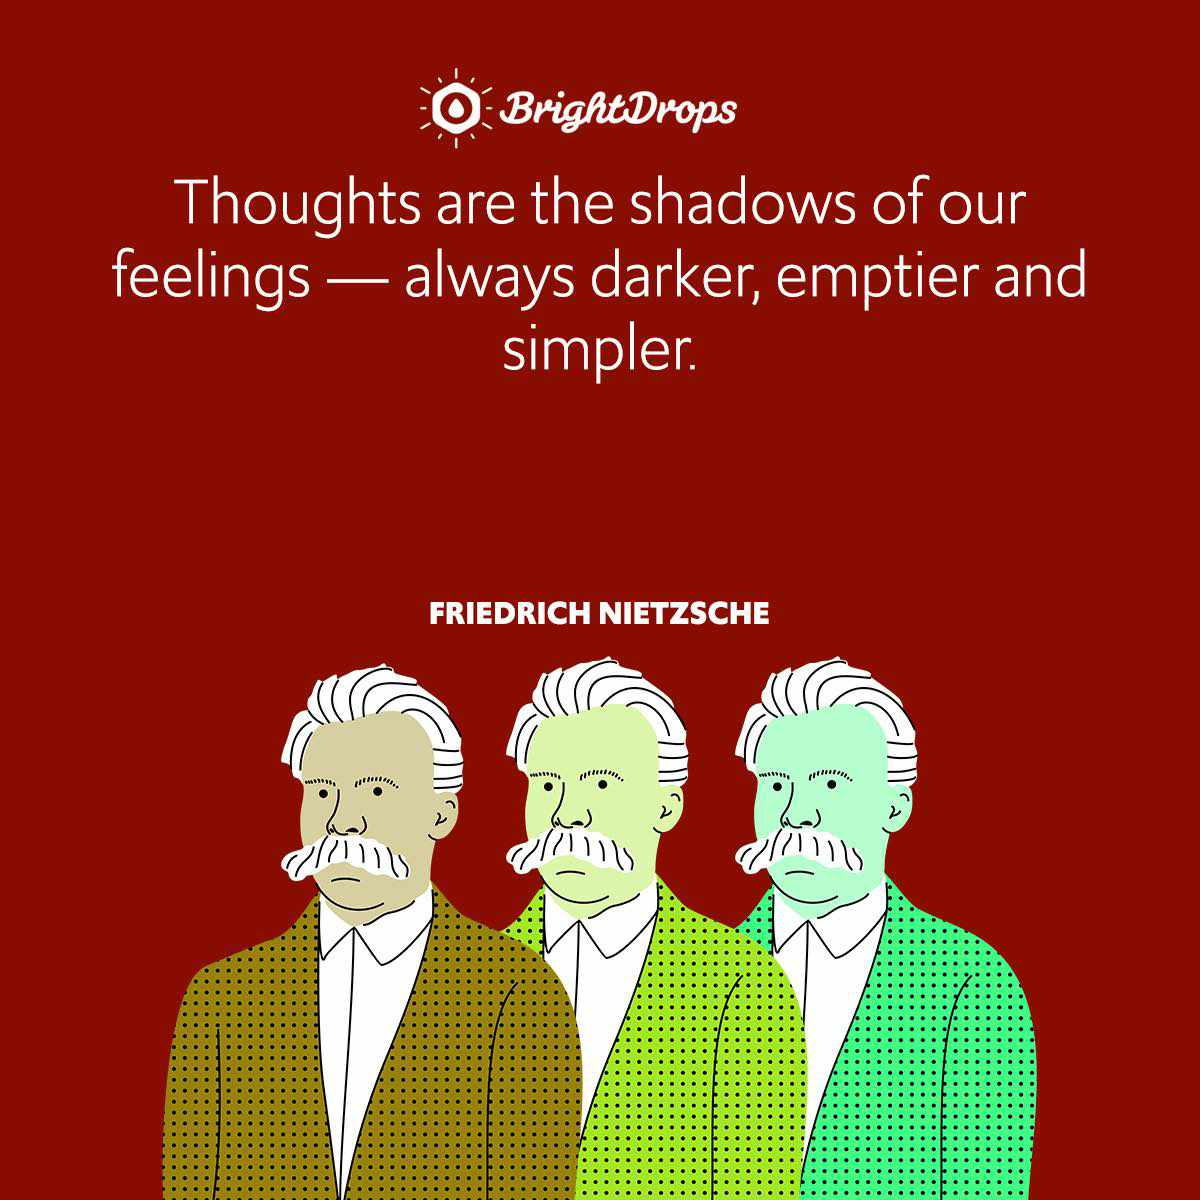 Thoughts are the shadows of our feelings — always darker, emptier and simpler.